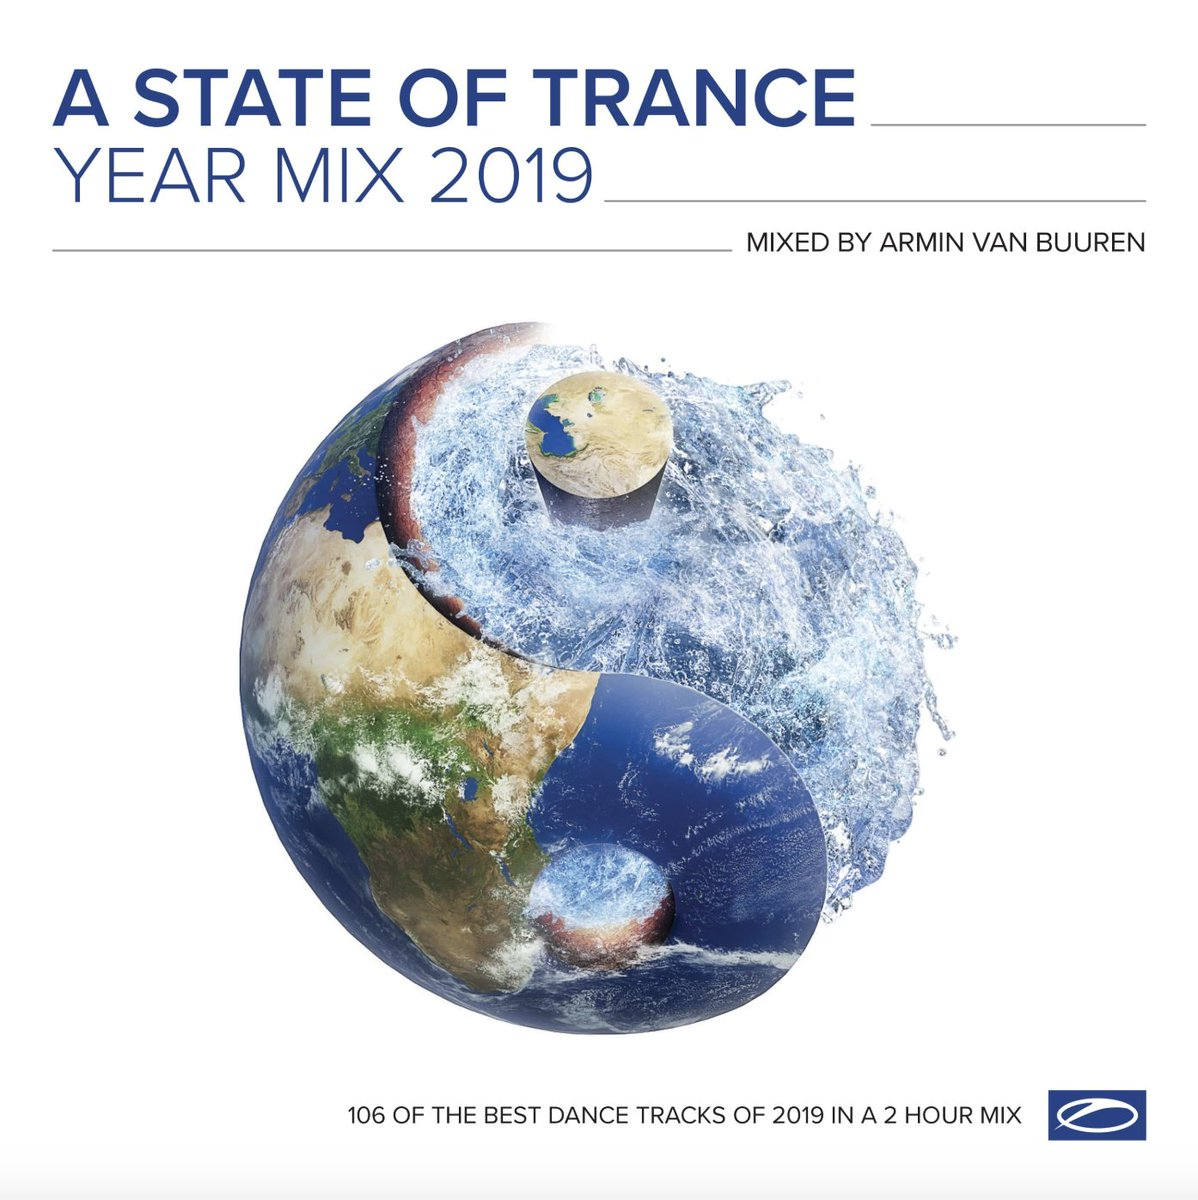 The ASOT Year Mix 2019 is here 🕺🏻Look out for our tracks Iron, Trigger, Stardust feat. @KhoMha and a whole lot of bangers from amazing artists! https://t.co/VN4e7OadSD @arminvanbuuren @asot https://t.co/4qqjlKokWZ